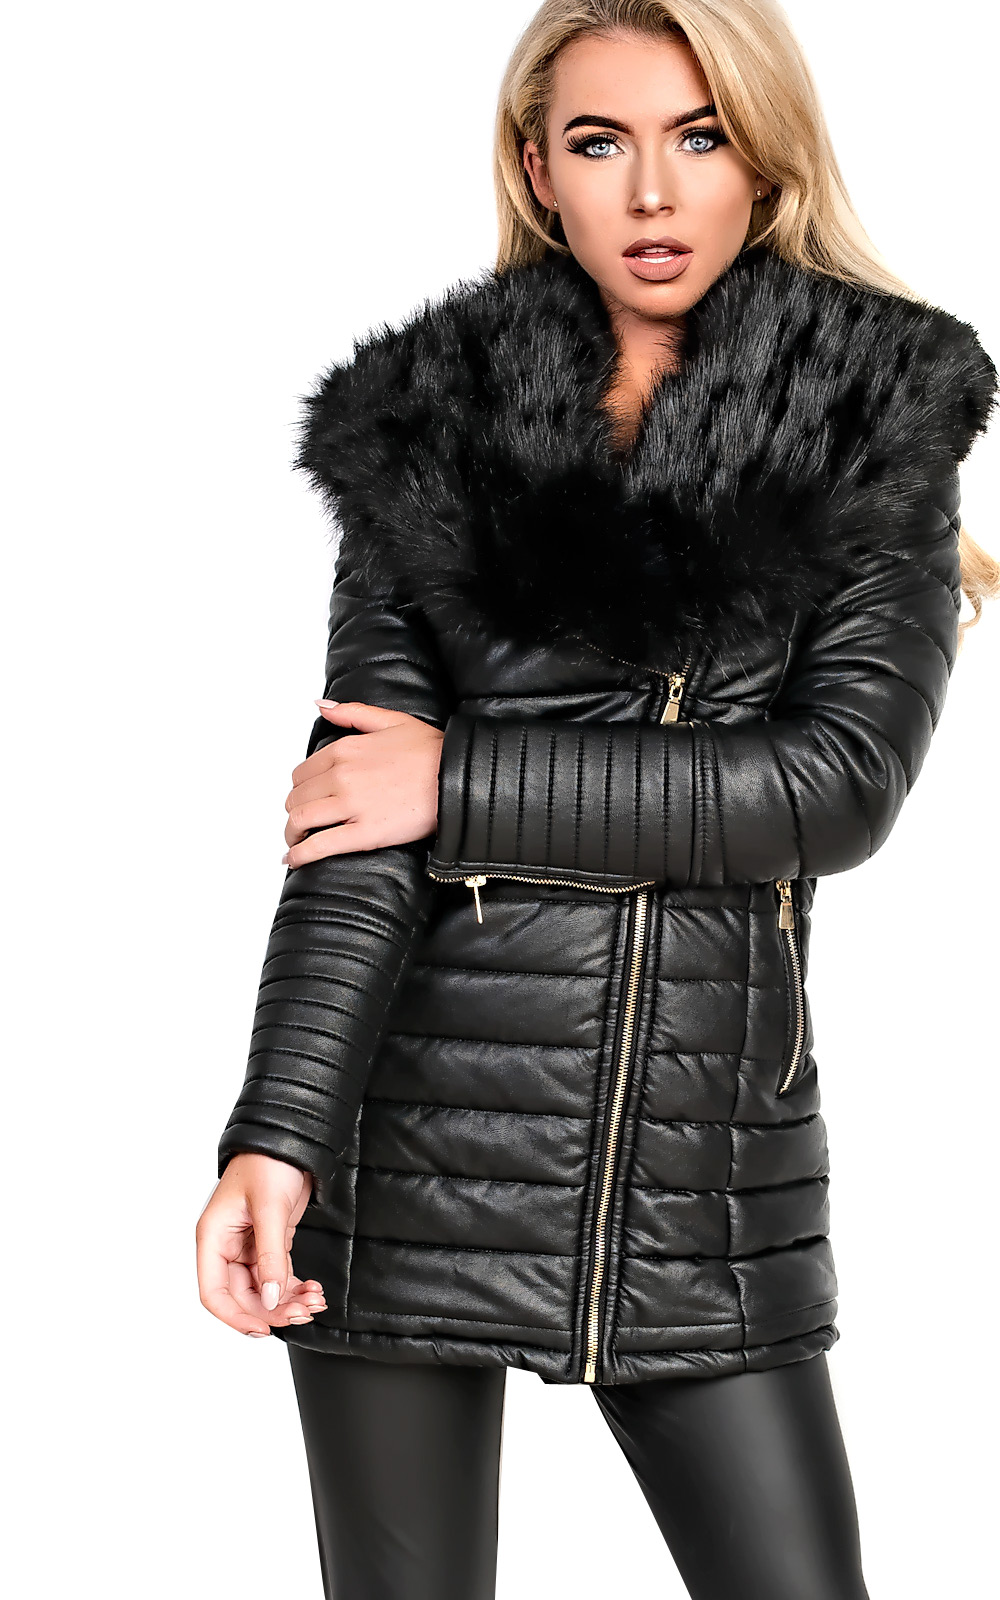 Ladies faux leather jackets